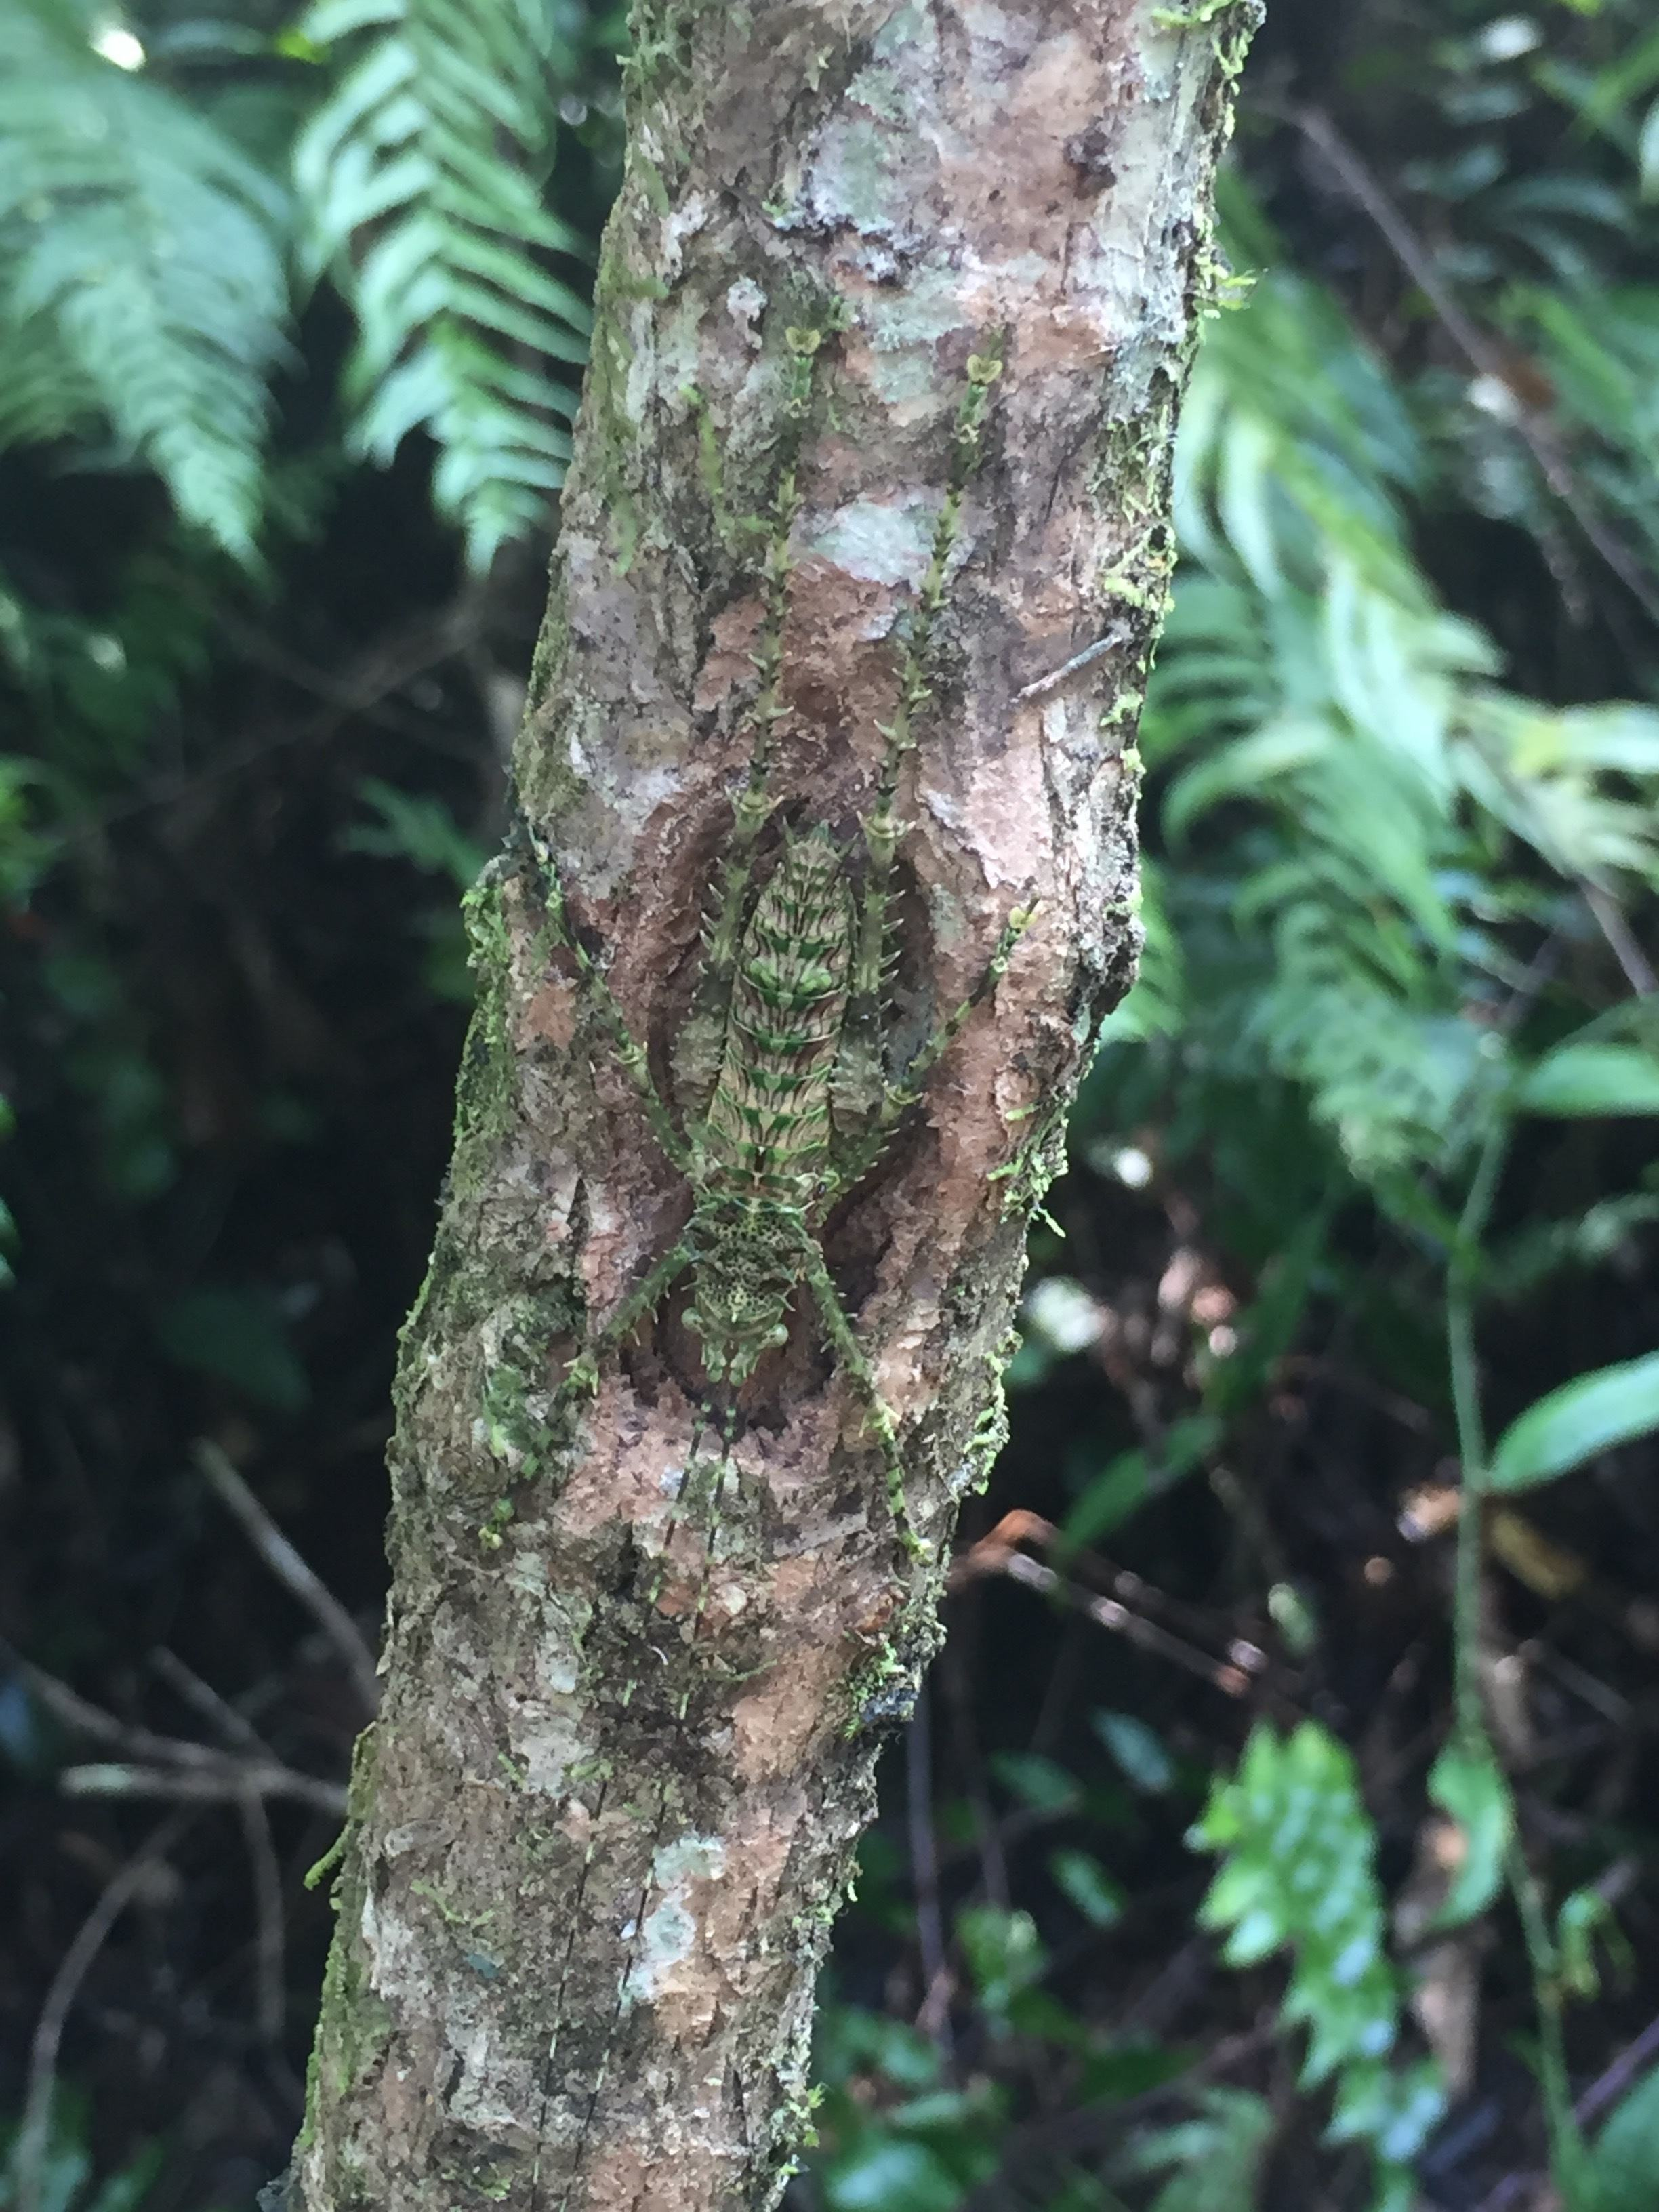 Insects camouflage on the tree bark